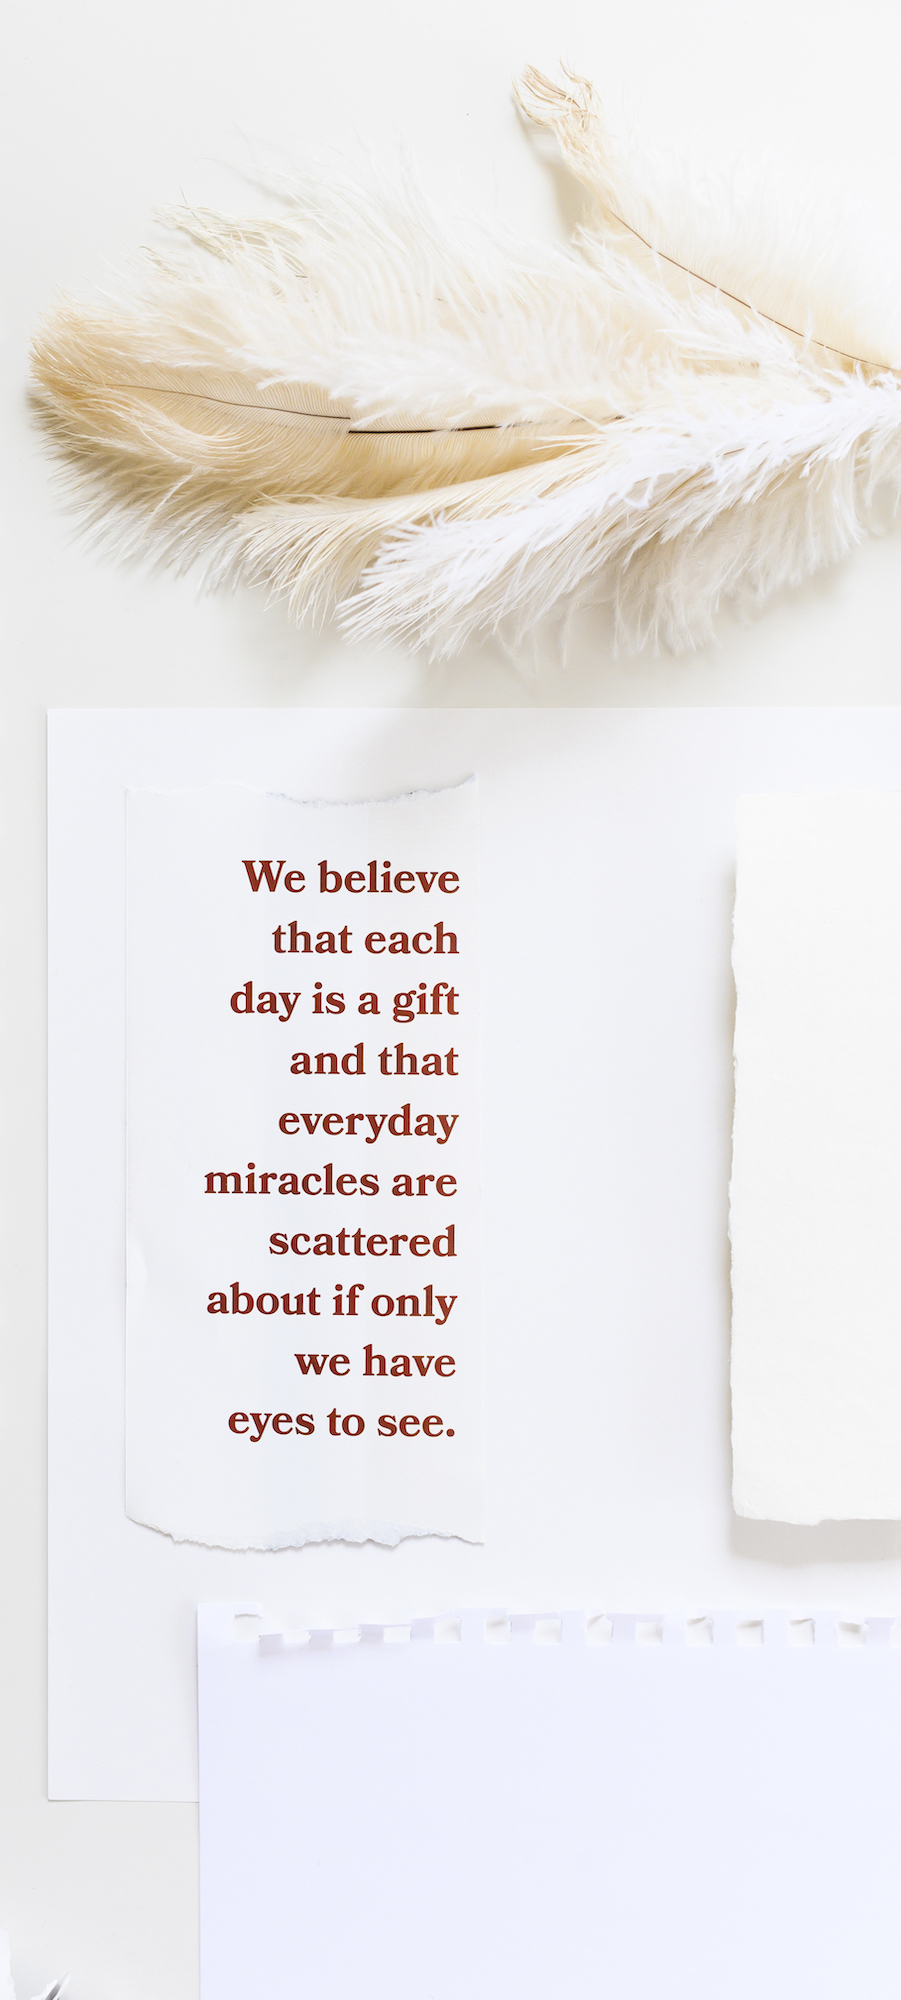 We believe that each day is a gift and that everyday miracles are scattered about if only we have eyes to see. Healthy boundary setting in Miramar, FL is done here with codependency treatment, healthy boundaries, anxiety treatment and divorce recovery in Miramar, FL.